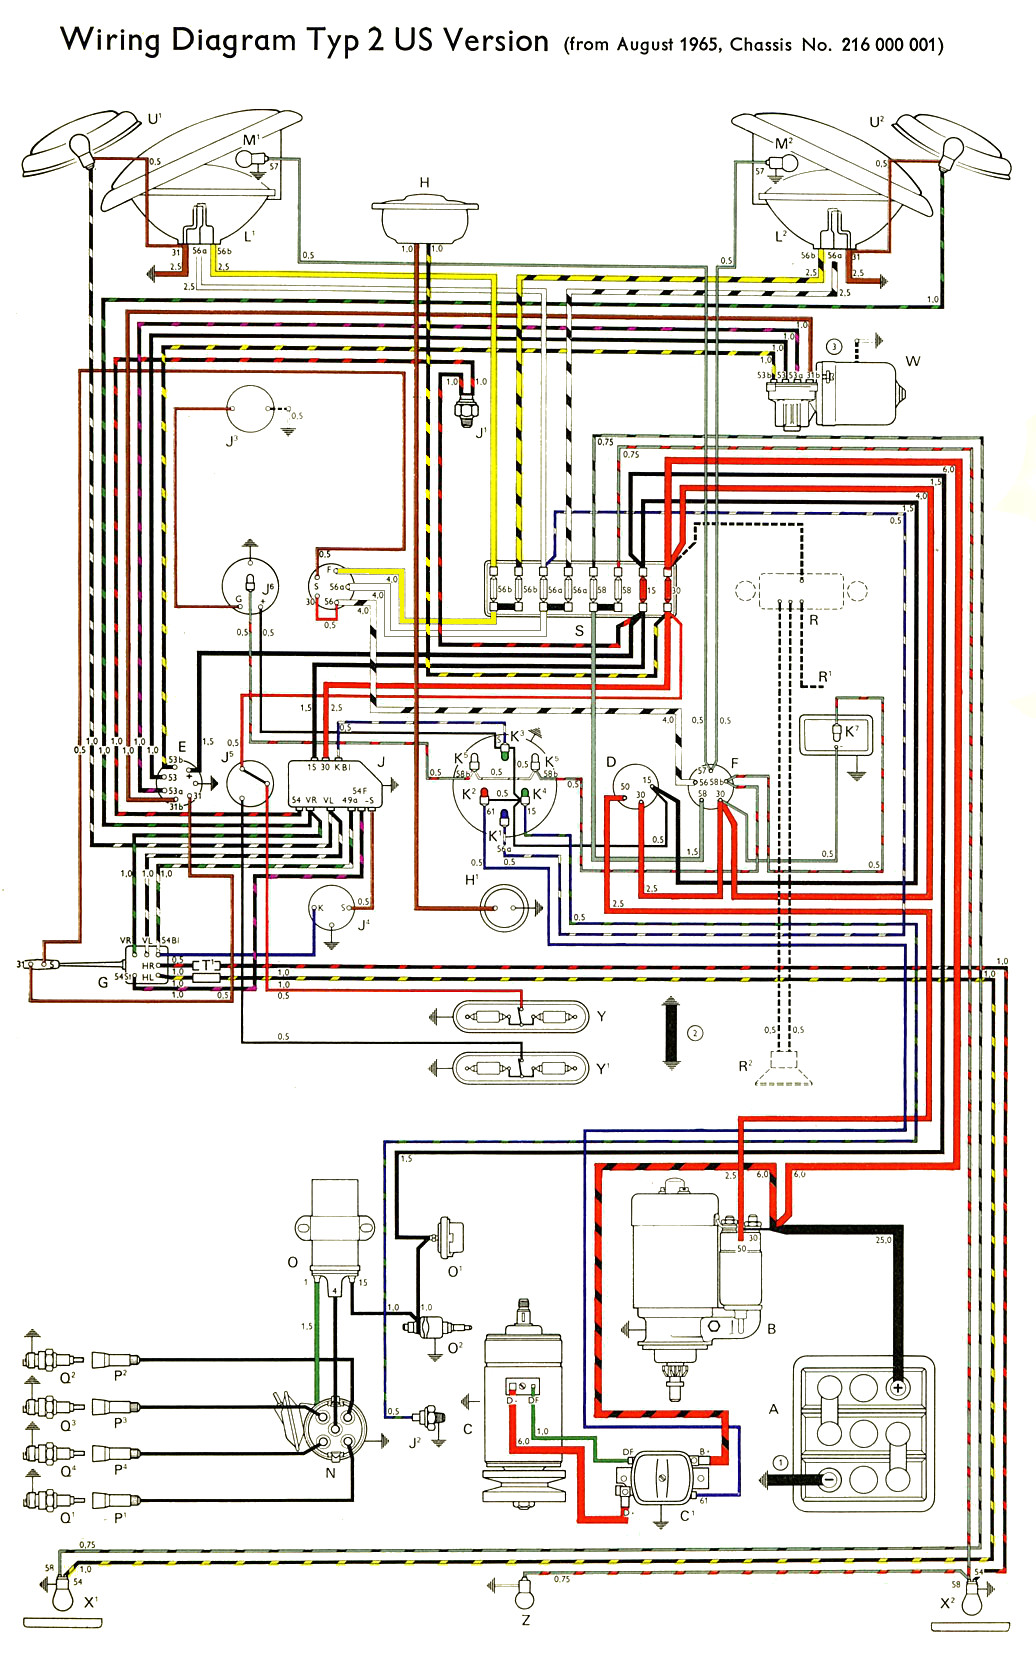 thesamba com type 2 wiring diagrams rh thesamba com VW Bus Engine Diagram 1971 VW Bus Wiring Diagram